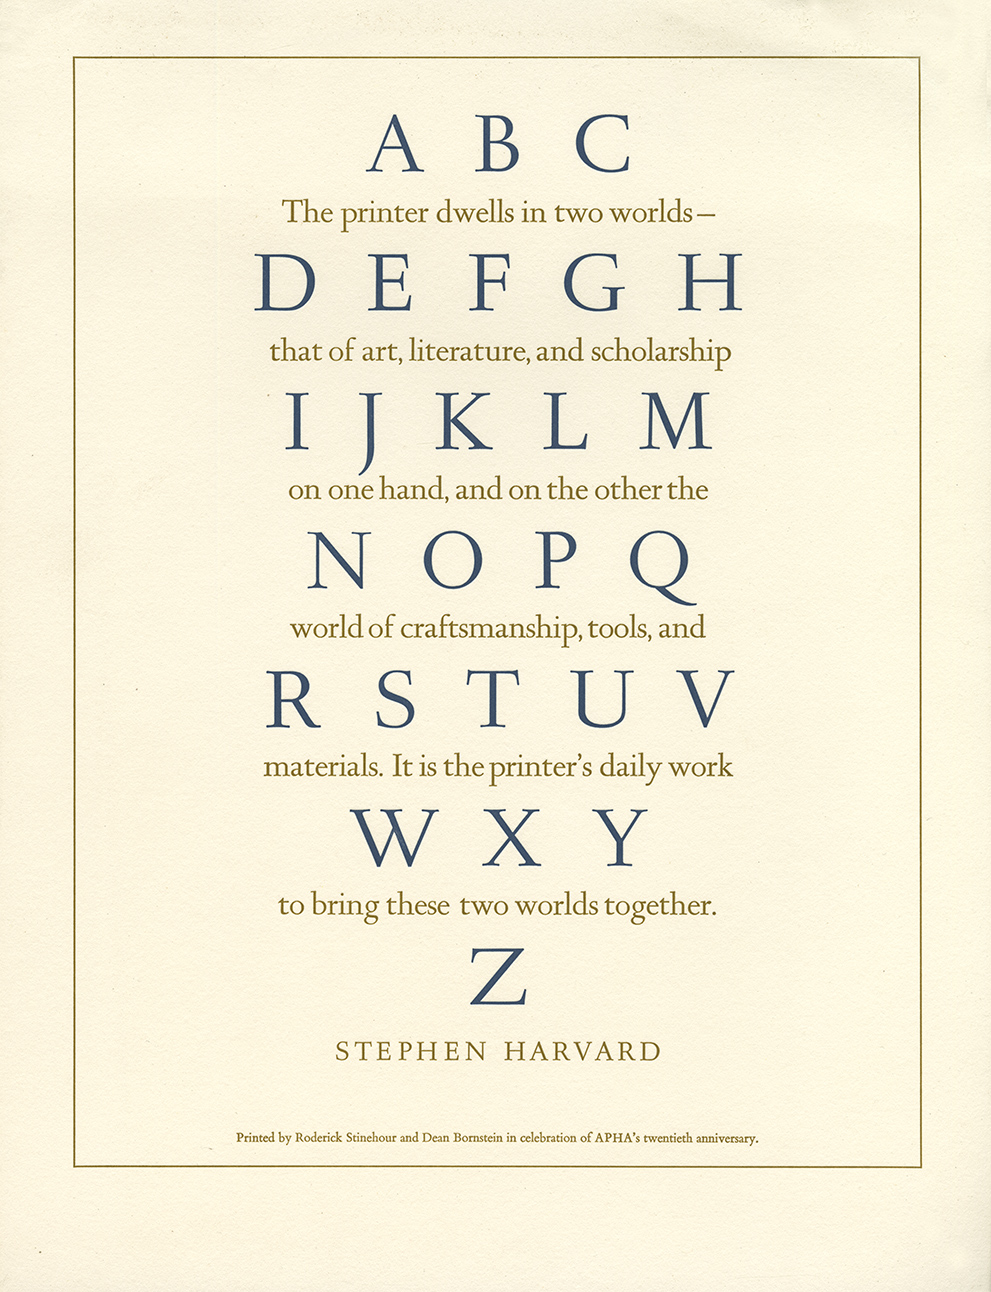 Stephen Harvard Quote